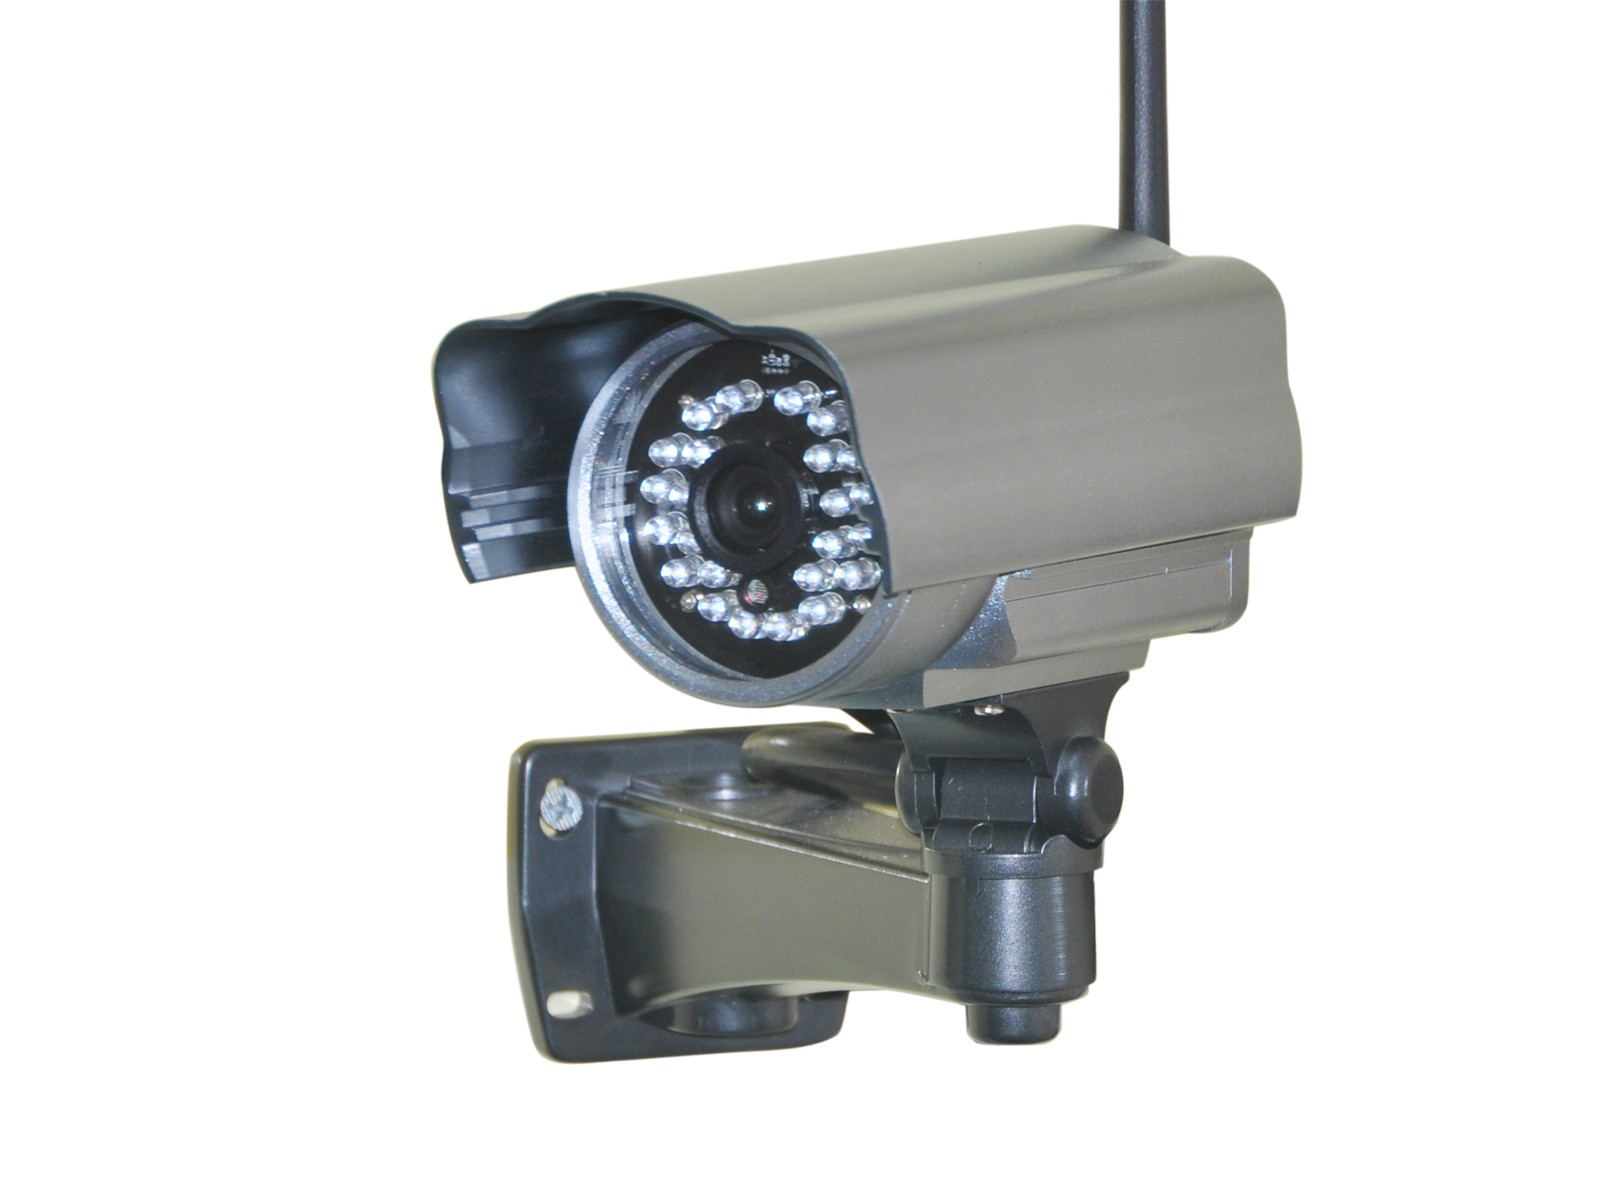 Outdoor Night Vision Waterproof 0.3 Megapixel IP Camera